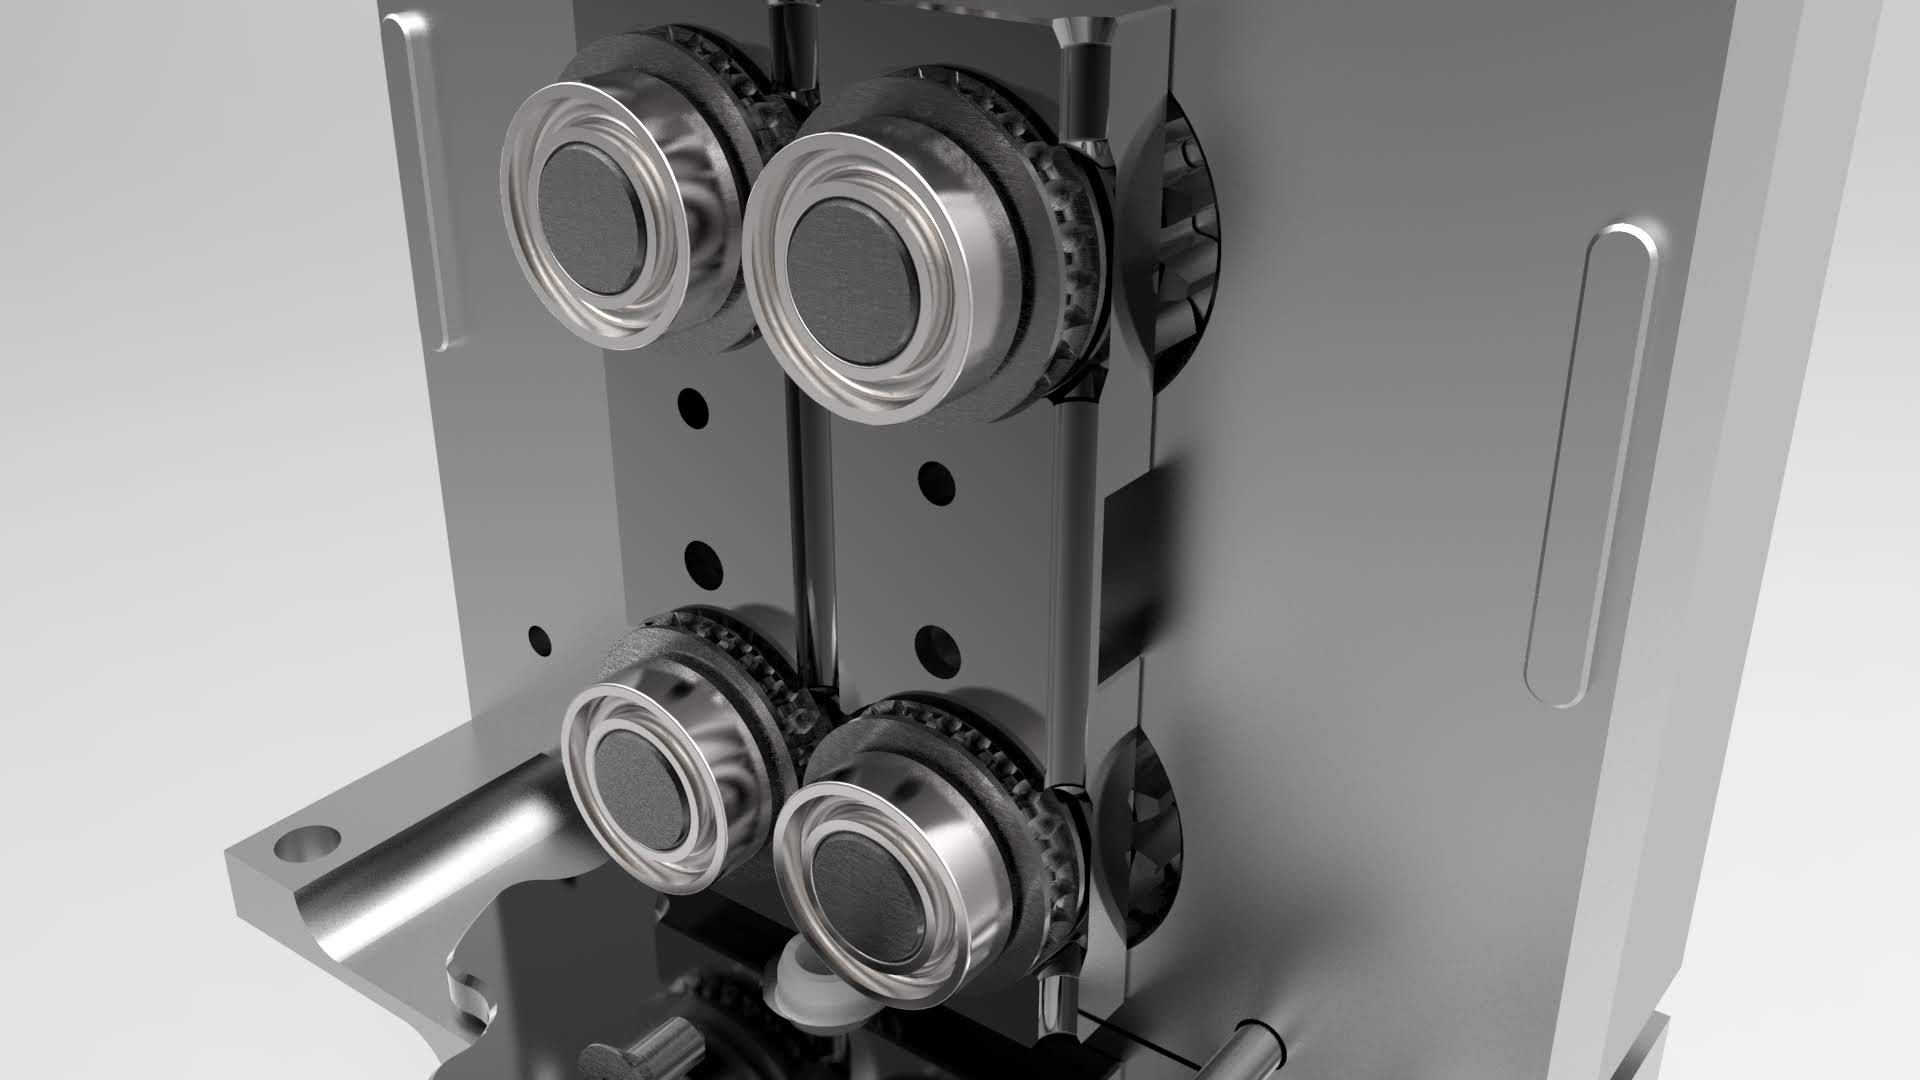 Quad Pinch Gear System on the Typhoon Extruder